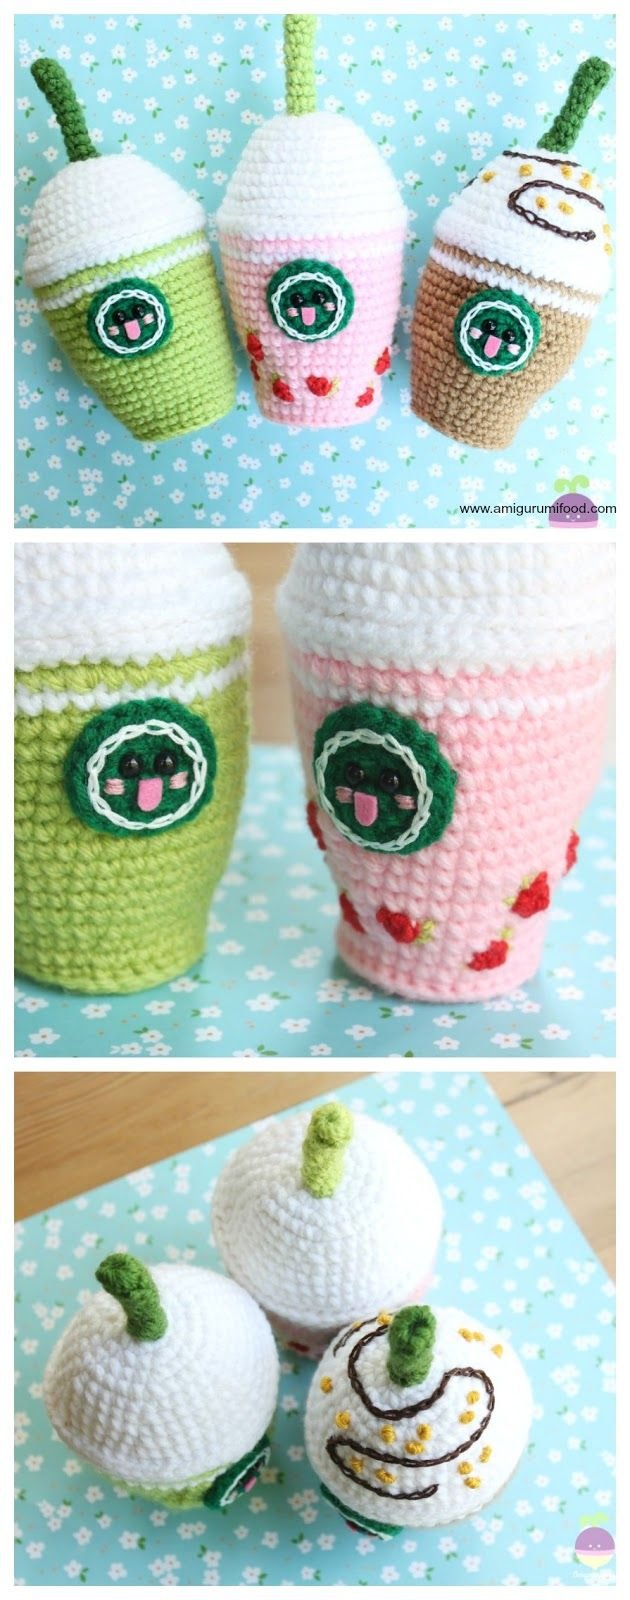 Amigurumi Food: Starcutes inspired by Starbucks Frappuccinos Amigurumi Food Crochet Pattern!!!